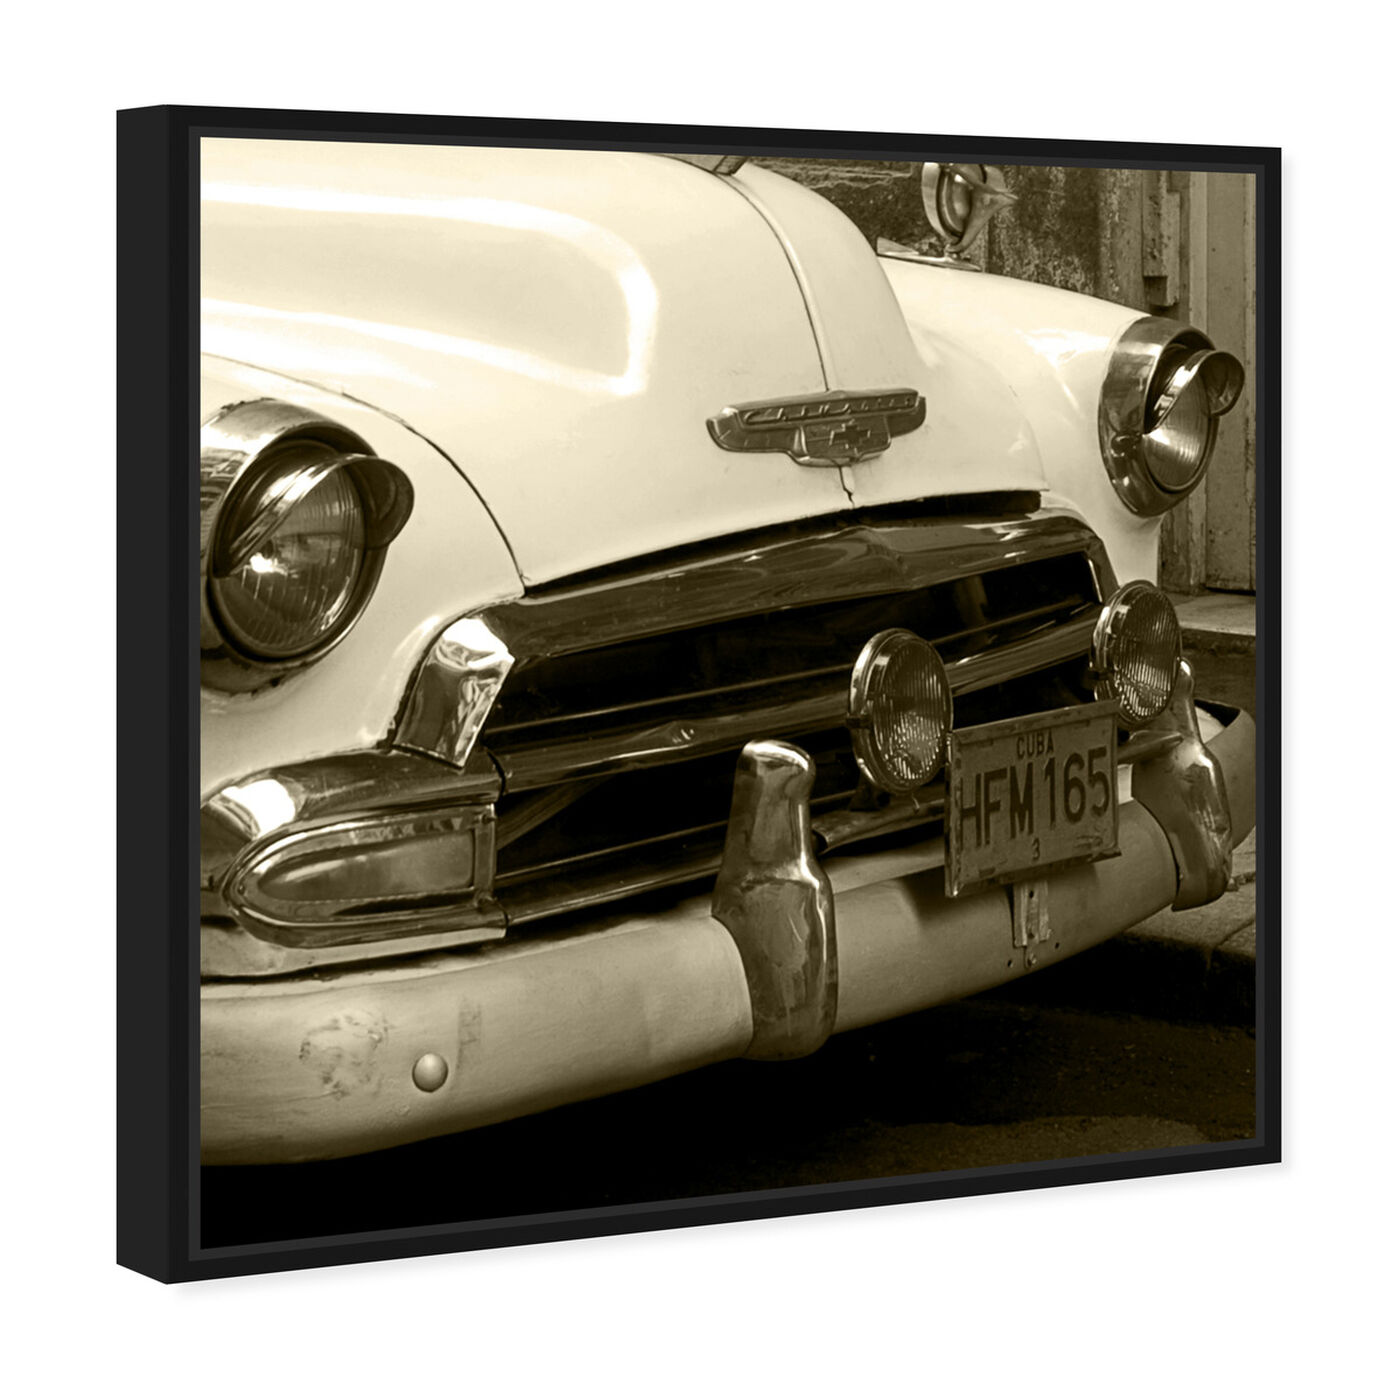 Angled view of Vintage Macchina II featuring transportation and automobiles art.